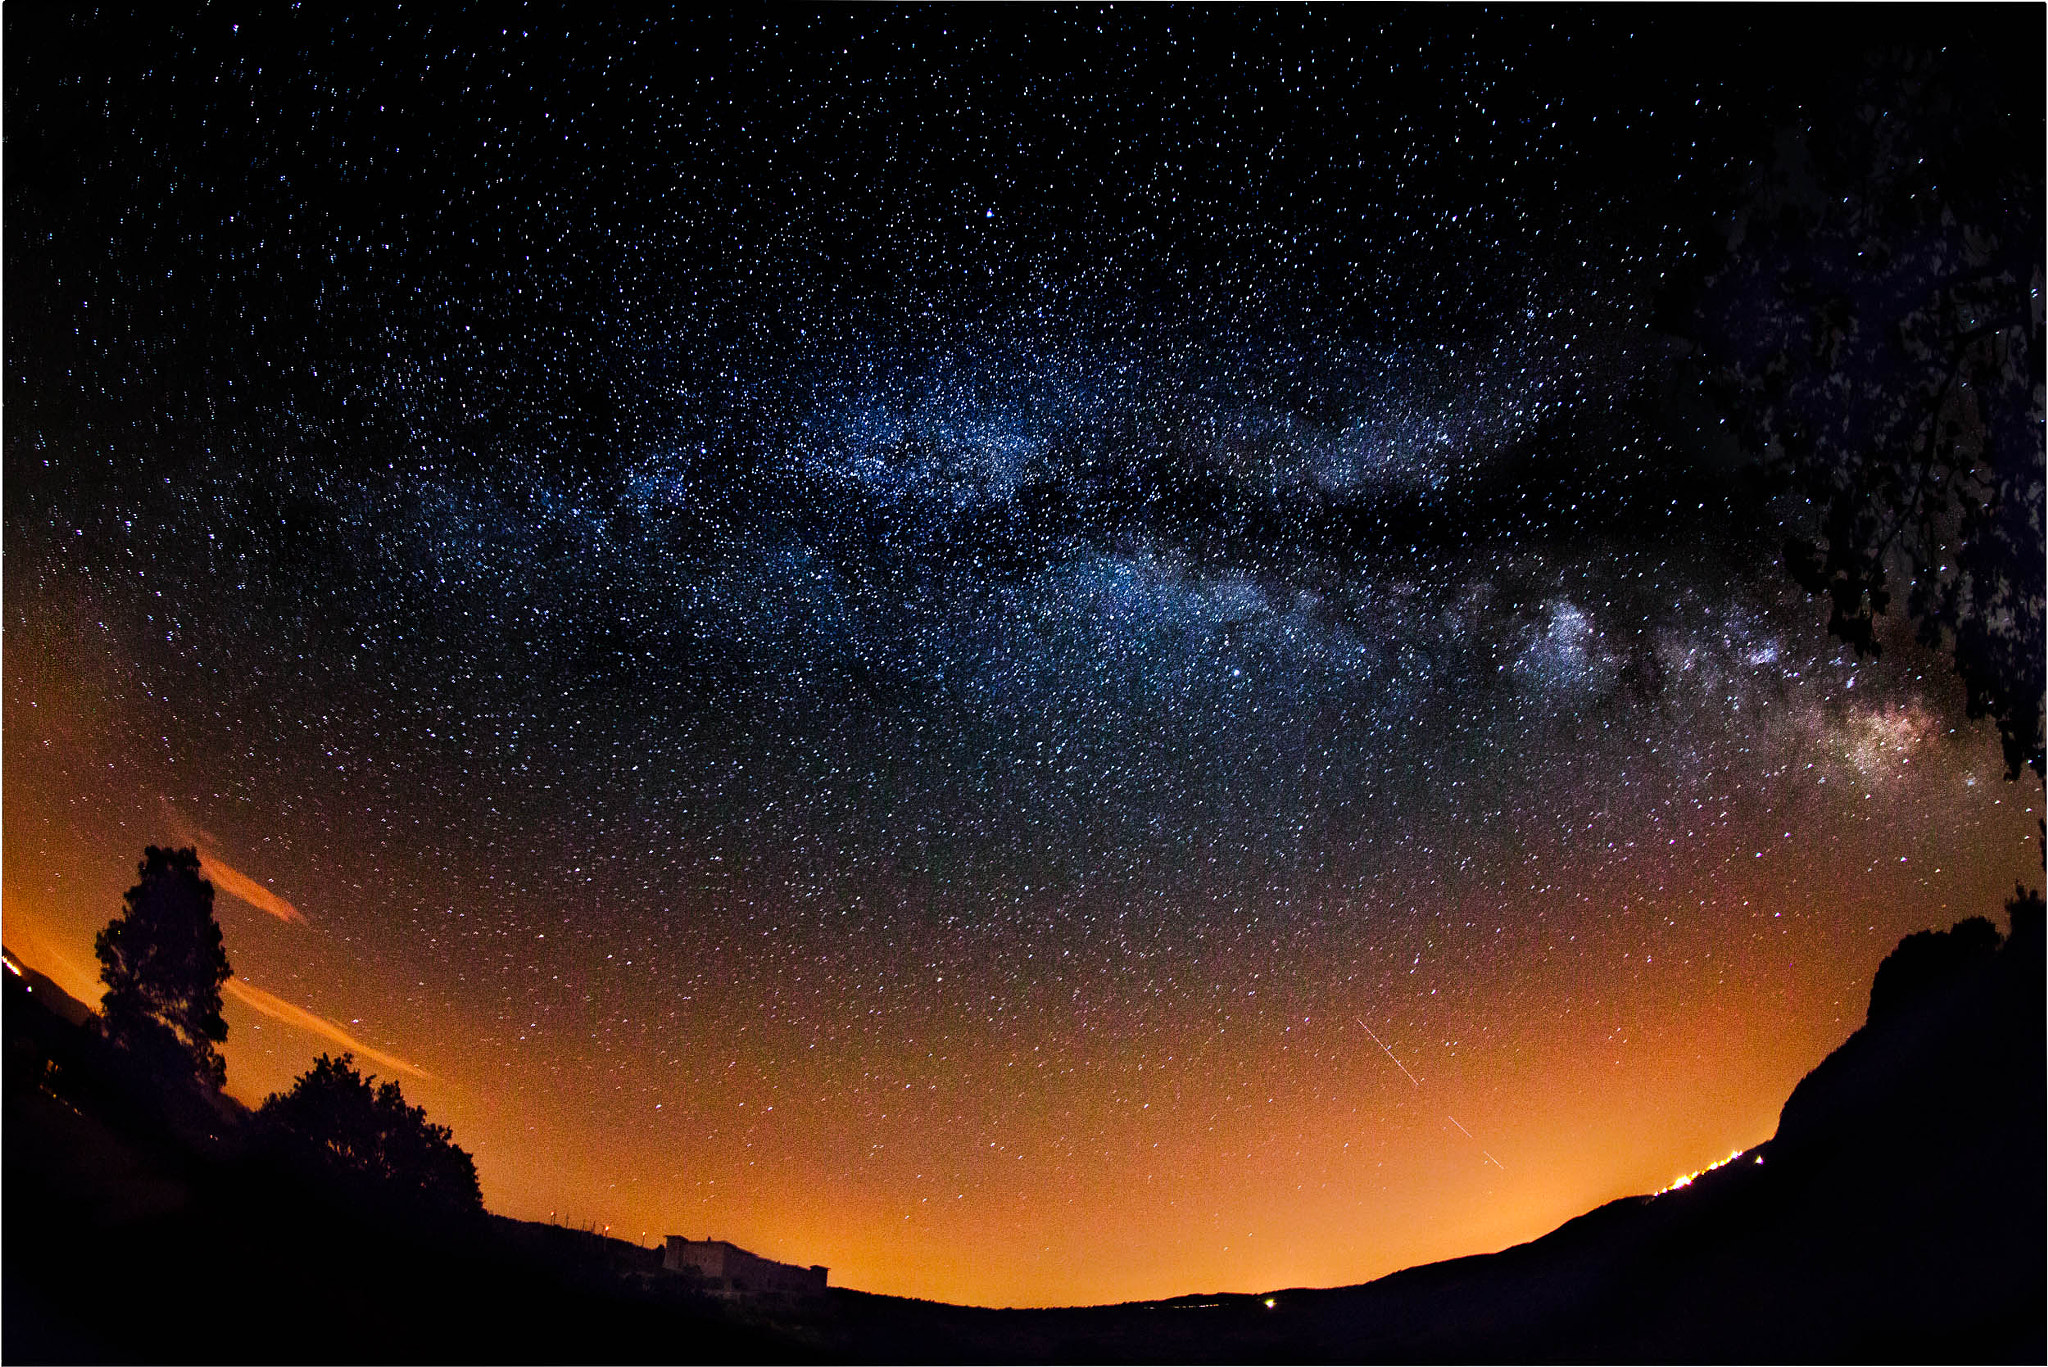 Photograph Milkway Montepo castle by Luca Martelli on 500px